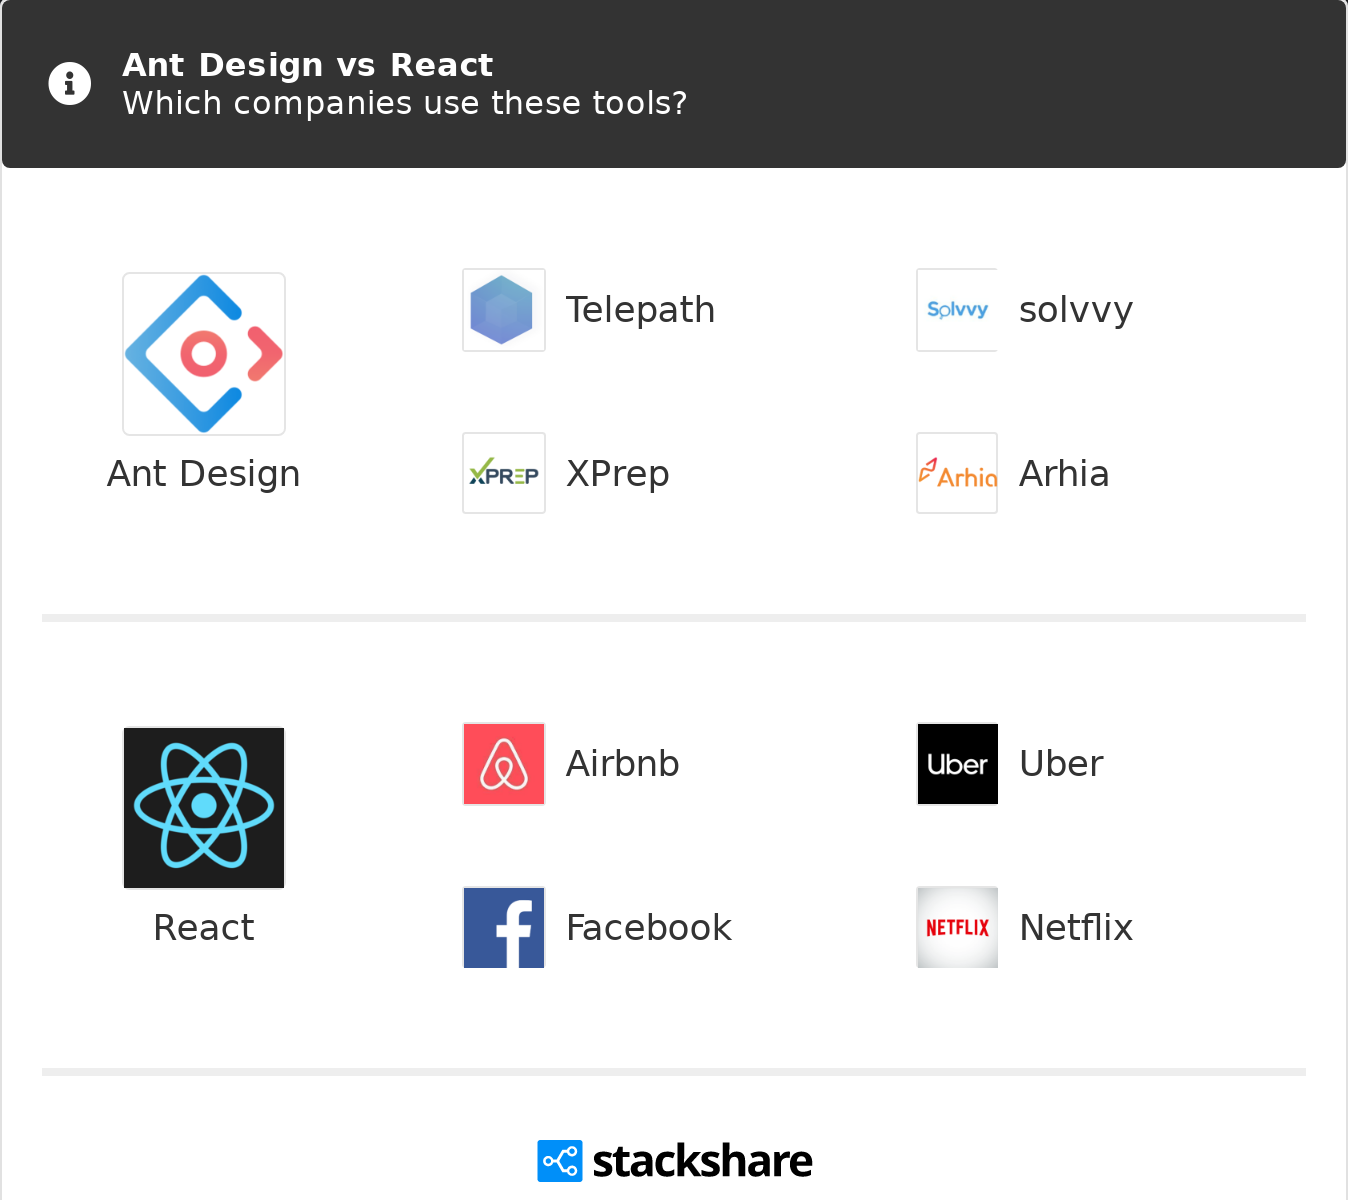 Ant Design vs React | What are the differences?